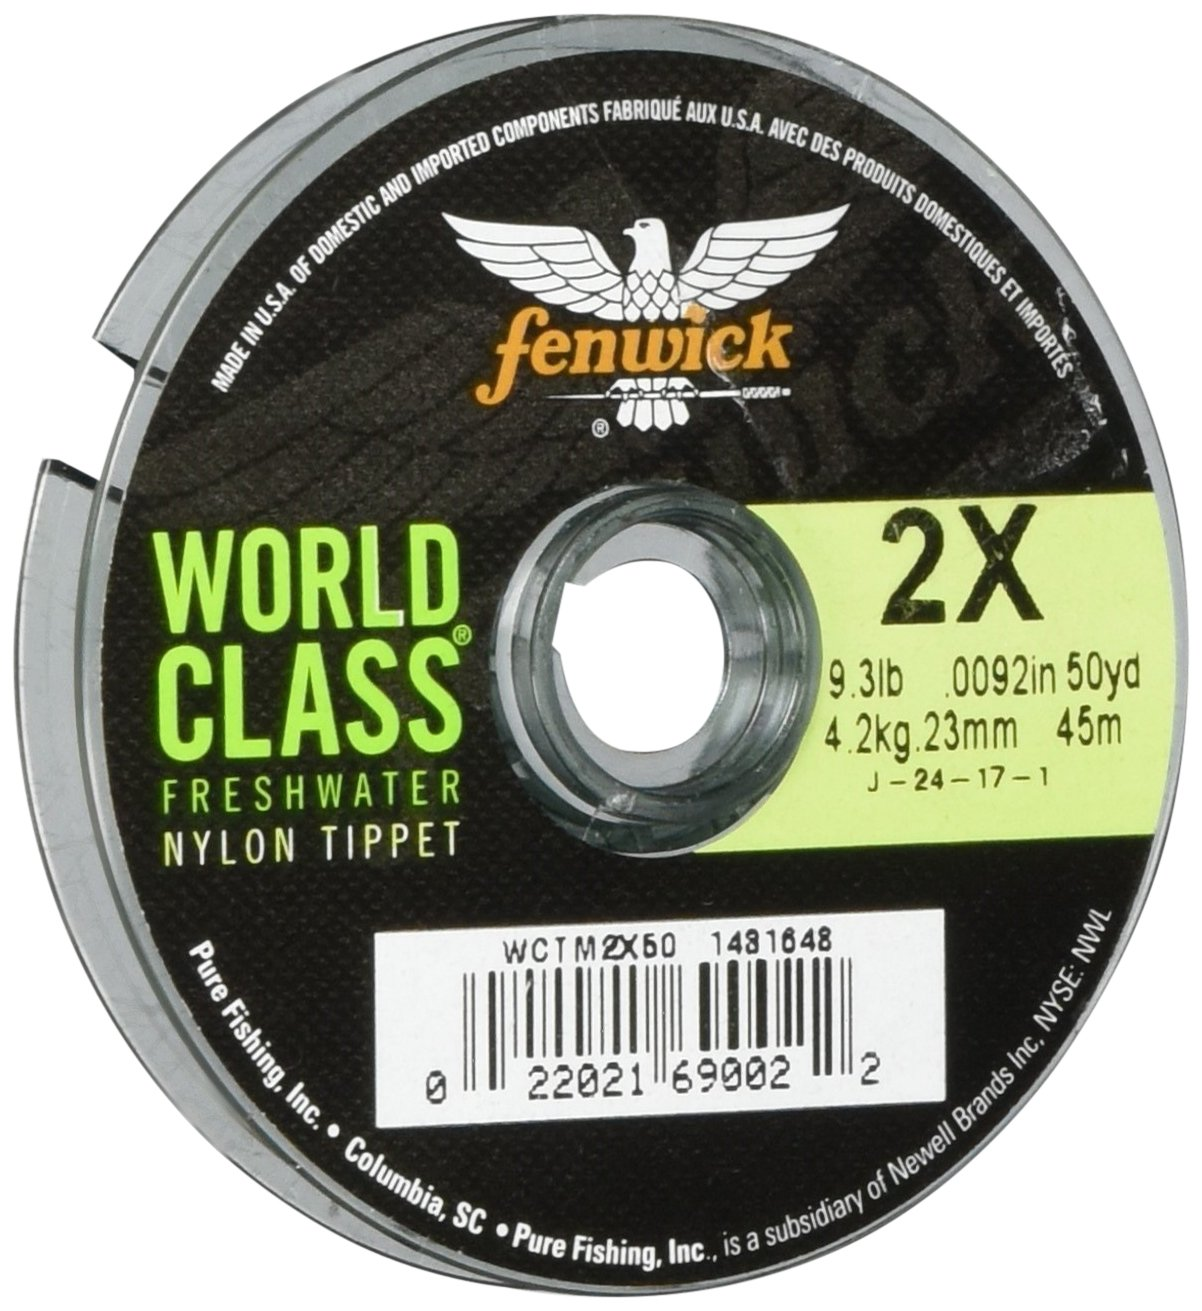 Fenwick Wctm2X50 World Class Freshwater Nylon Tippet 50 Yd 9 Lb Amazoncouk Sports Outdoors